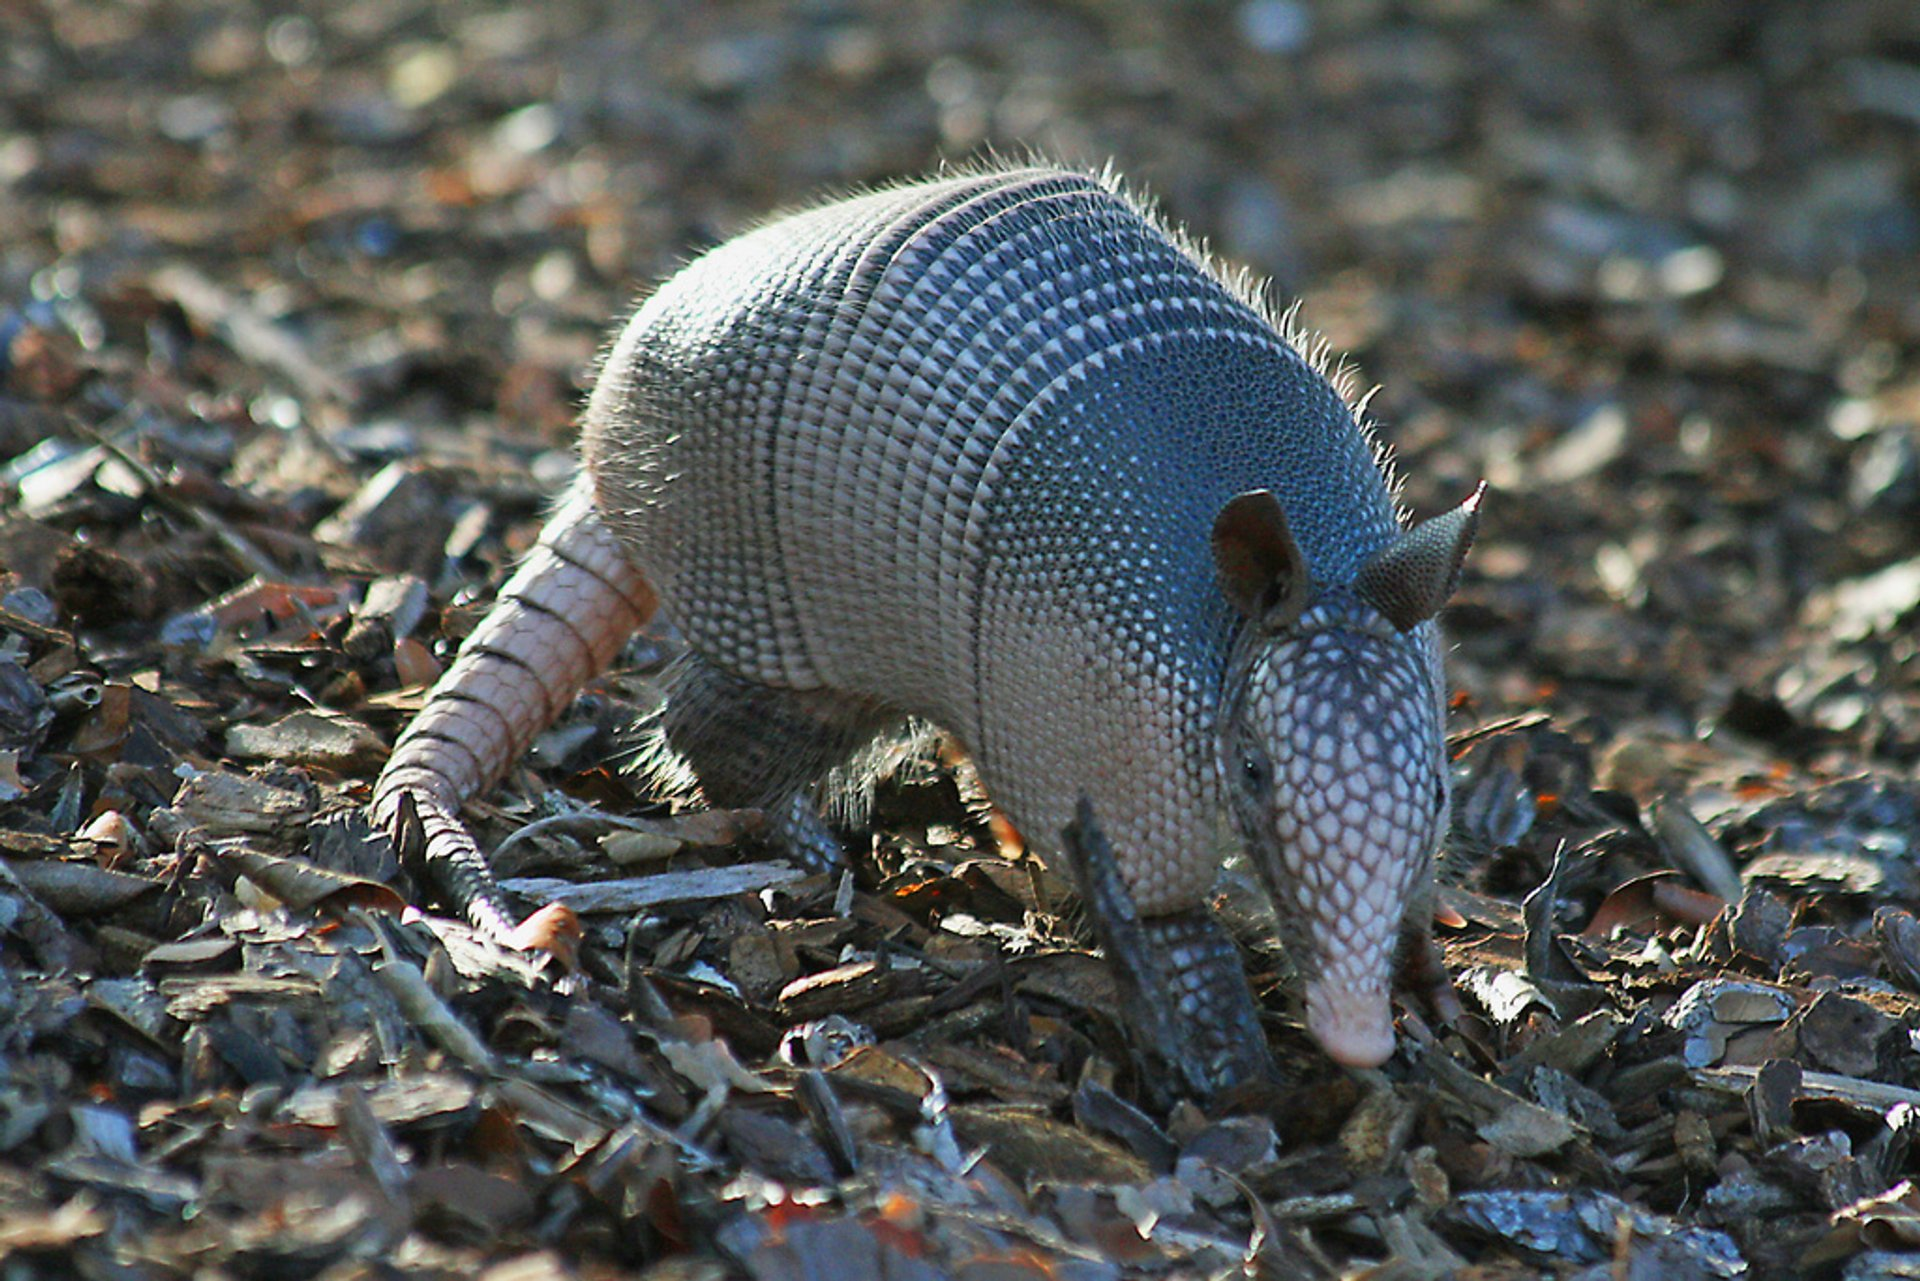 Armadillo in Texas 2020 - Best Time